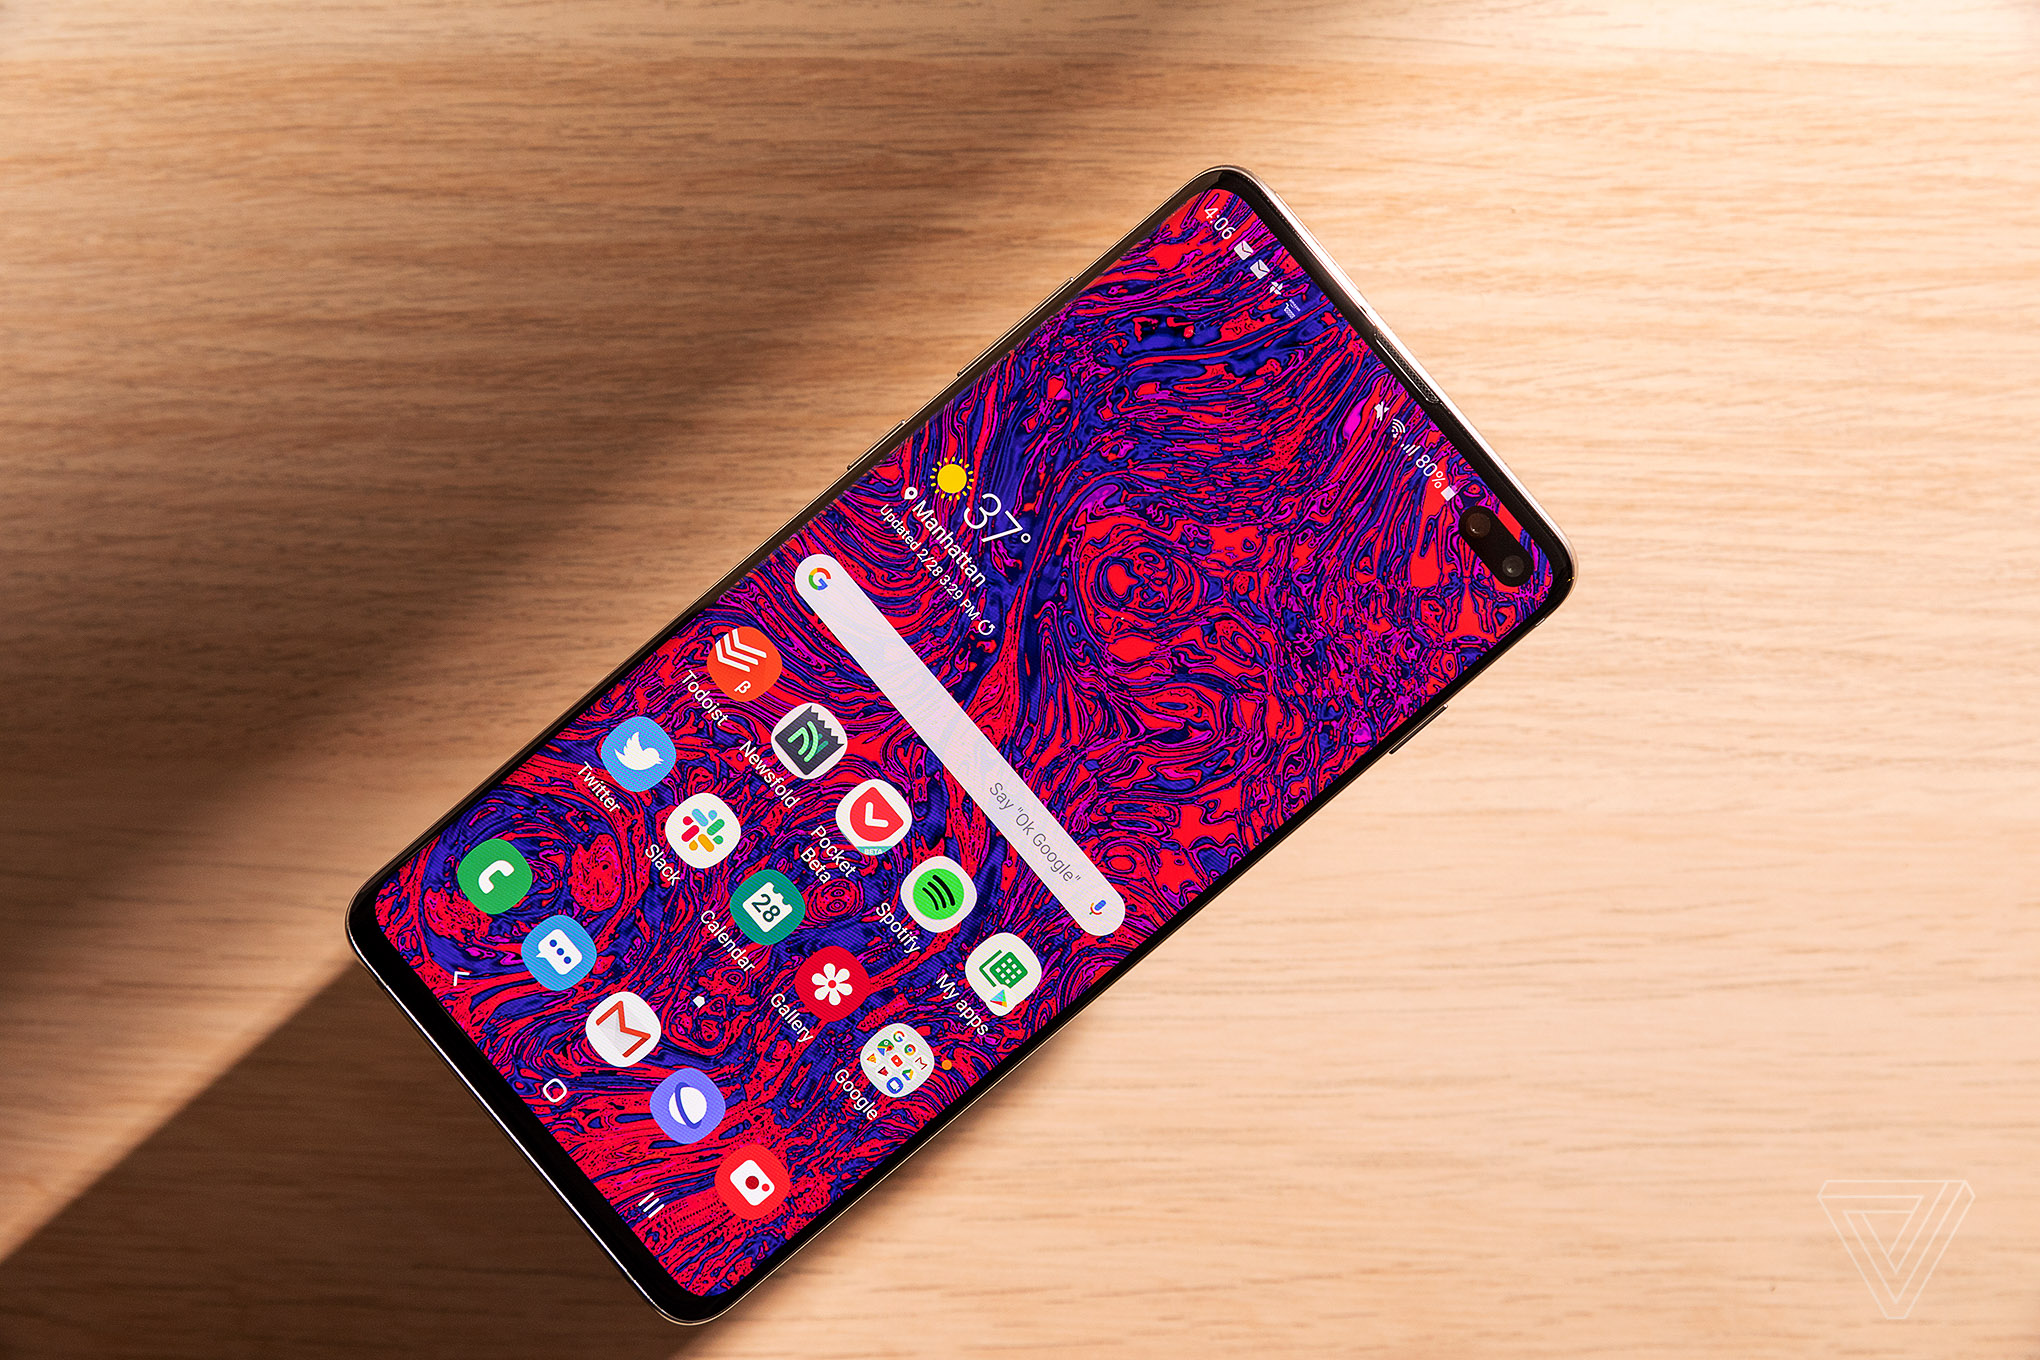 The entire Samsung Galaxy S10 lineup is $200 off at B&H Photo - The